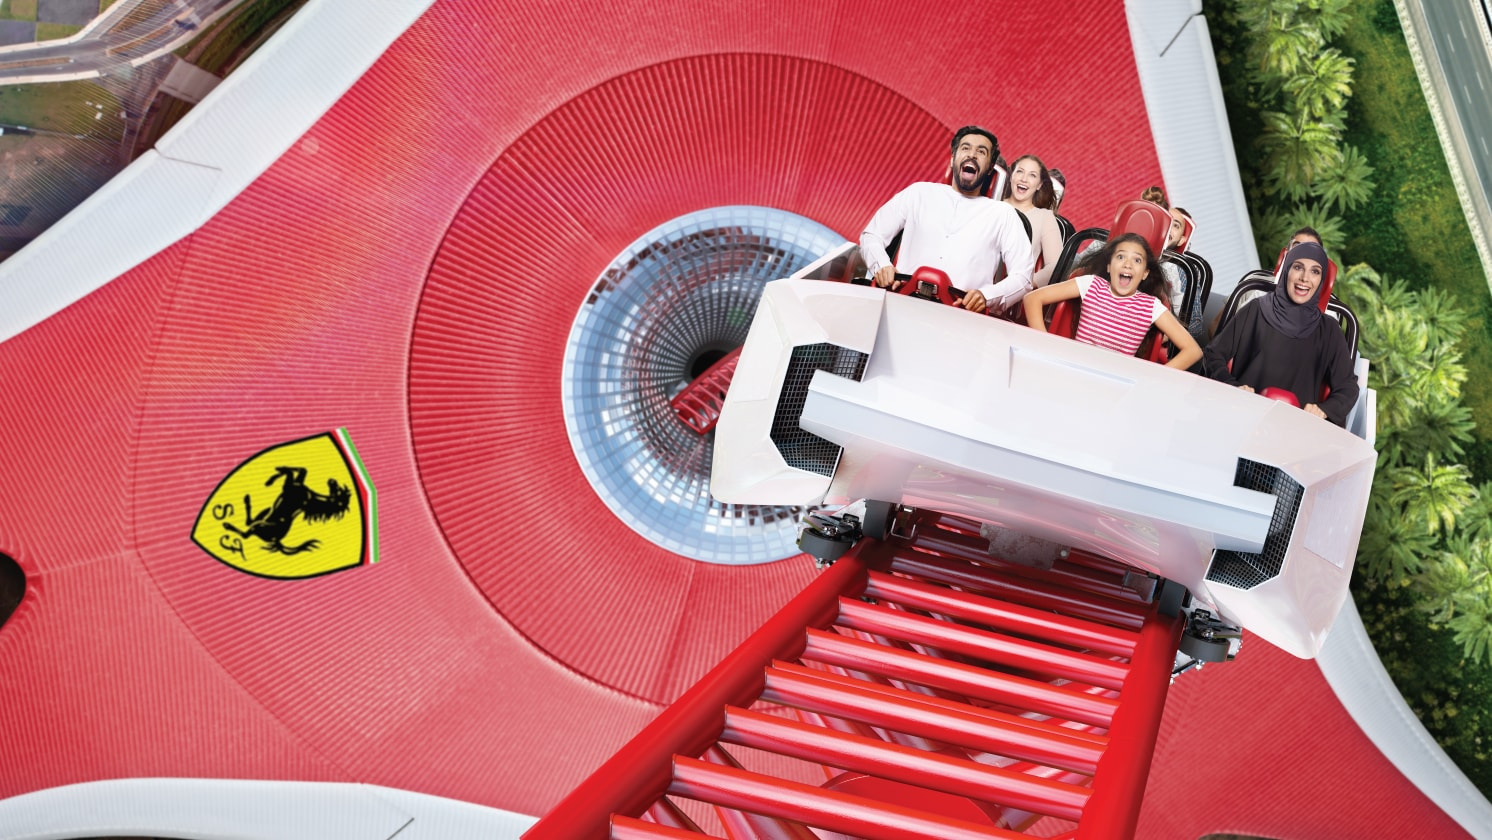 Ferrari World Map.Rides And Attractions Ferrari World Abu Dhabi